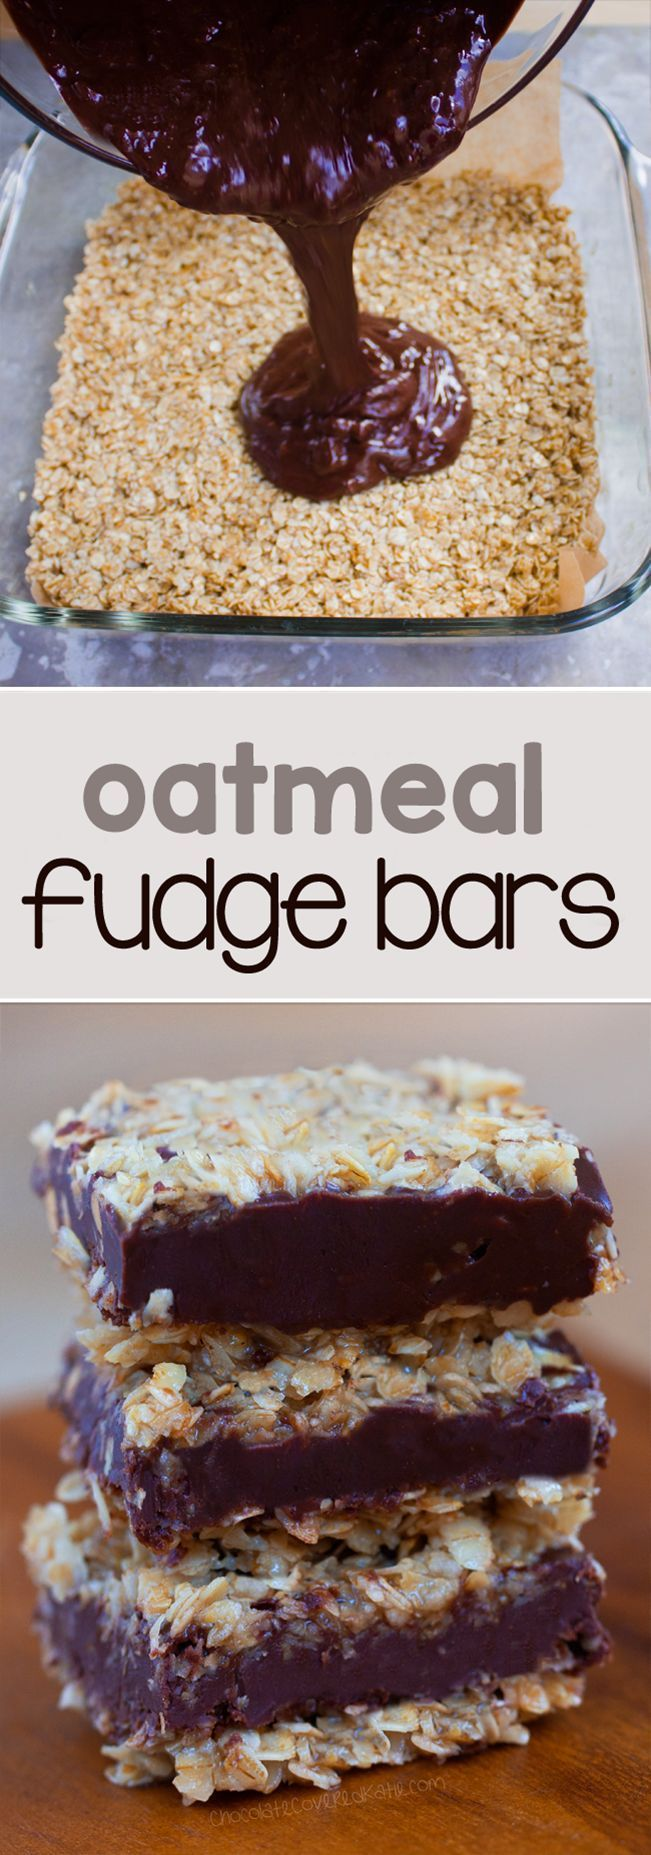 Oatmeal Fudge Bars - These gooey fudge bars are ADDICTIVE!!! ... Trust me, you should bookmark this recipe... I made two trays, and both were gone within an hour! ... /choccoveredkt/ http://chocolatecoveredkatie.com/2016/02/08/oatmeal-chocolate-fudge-bars/